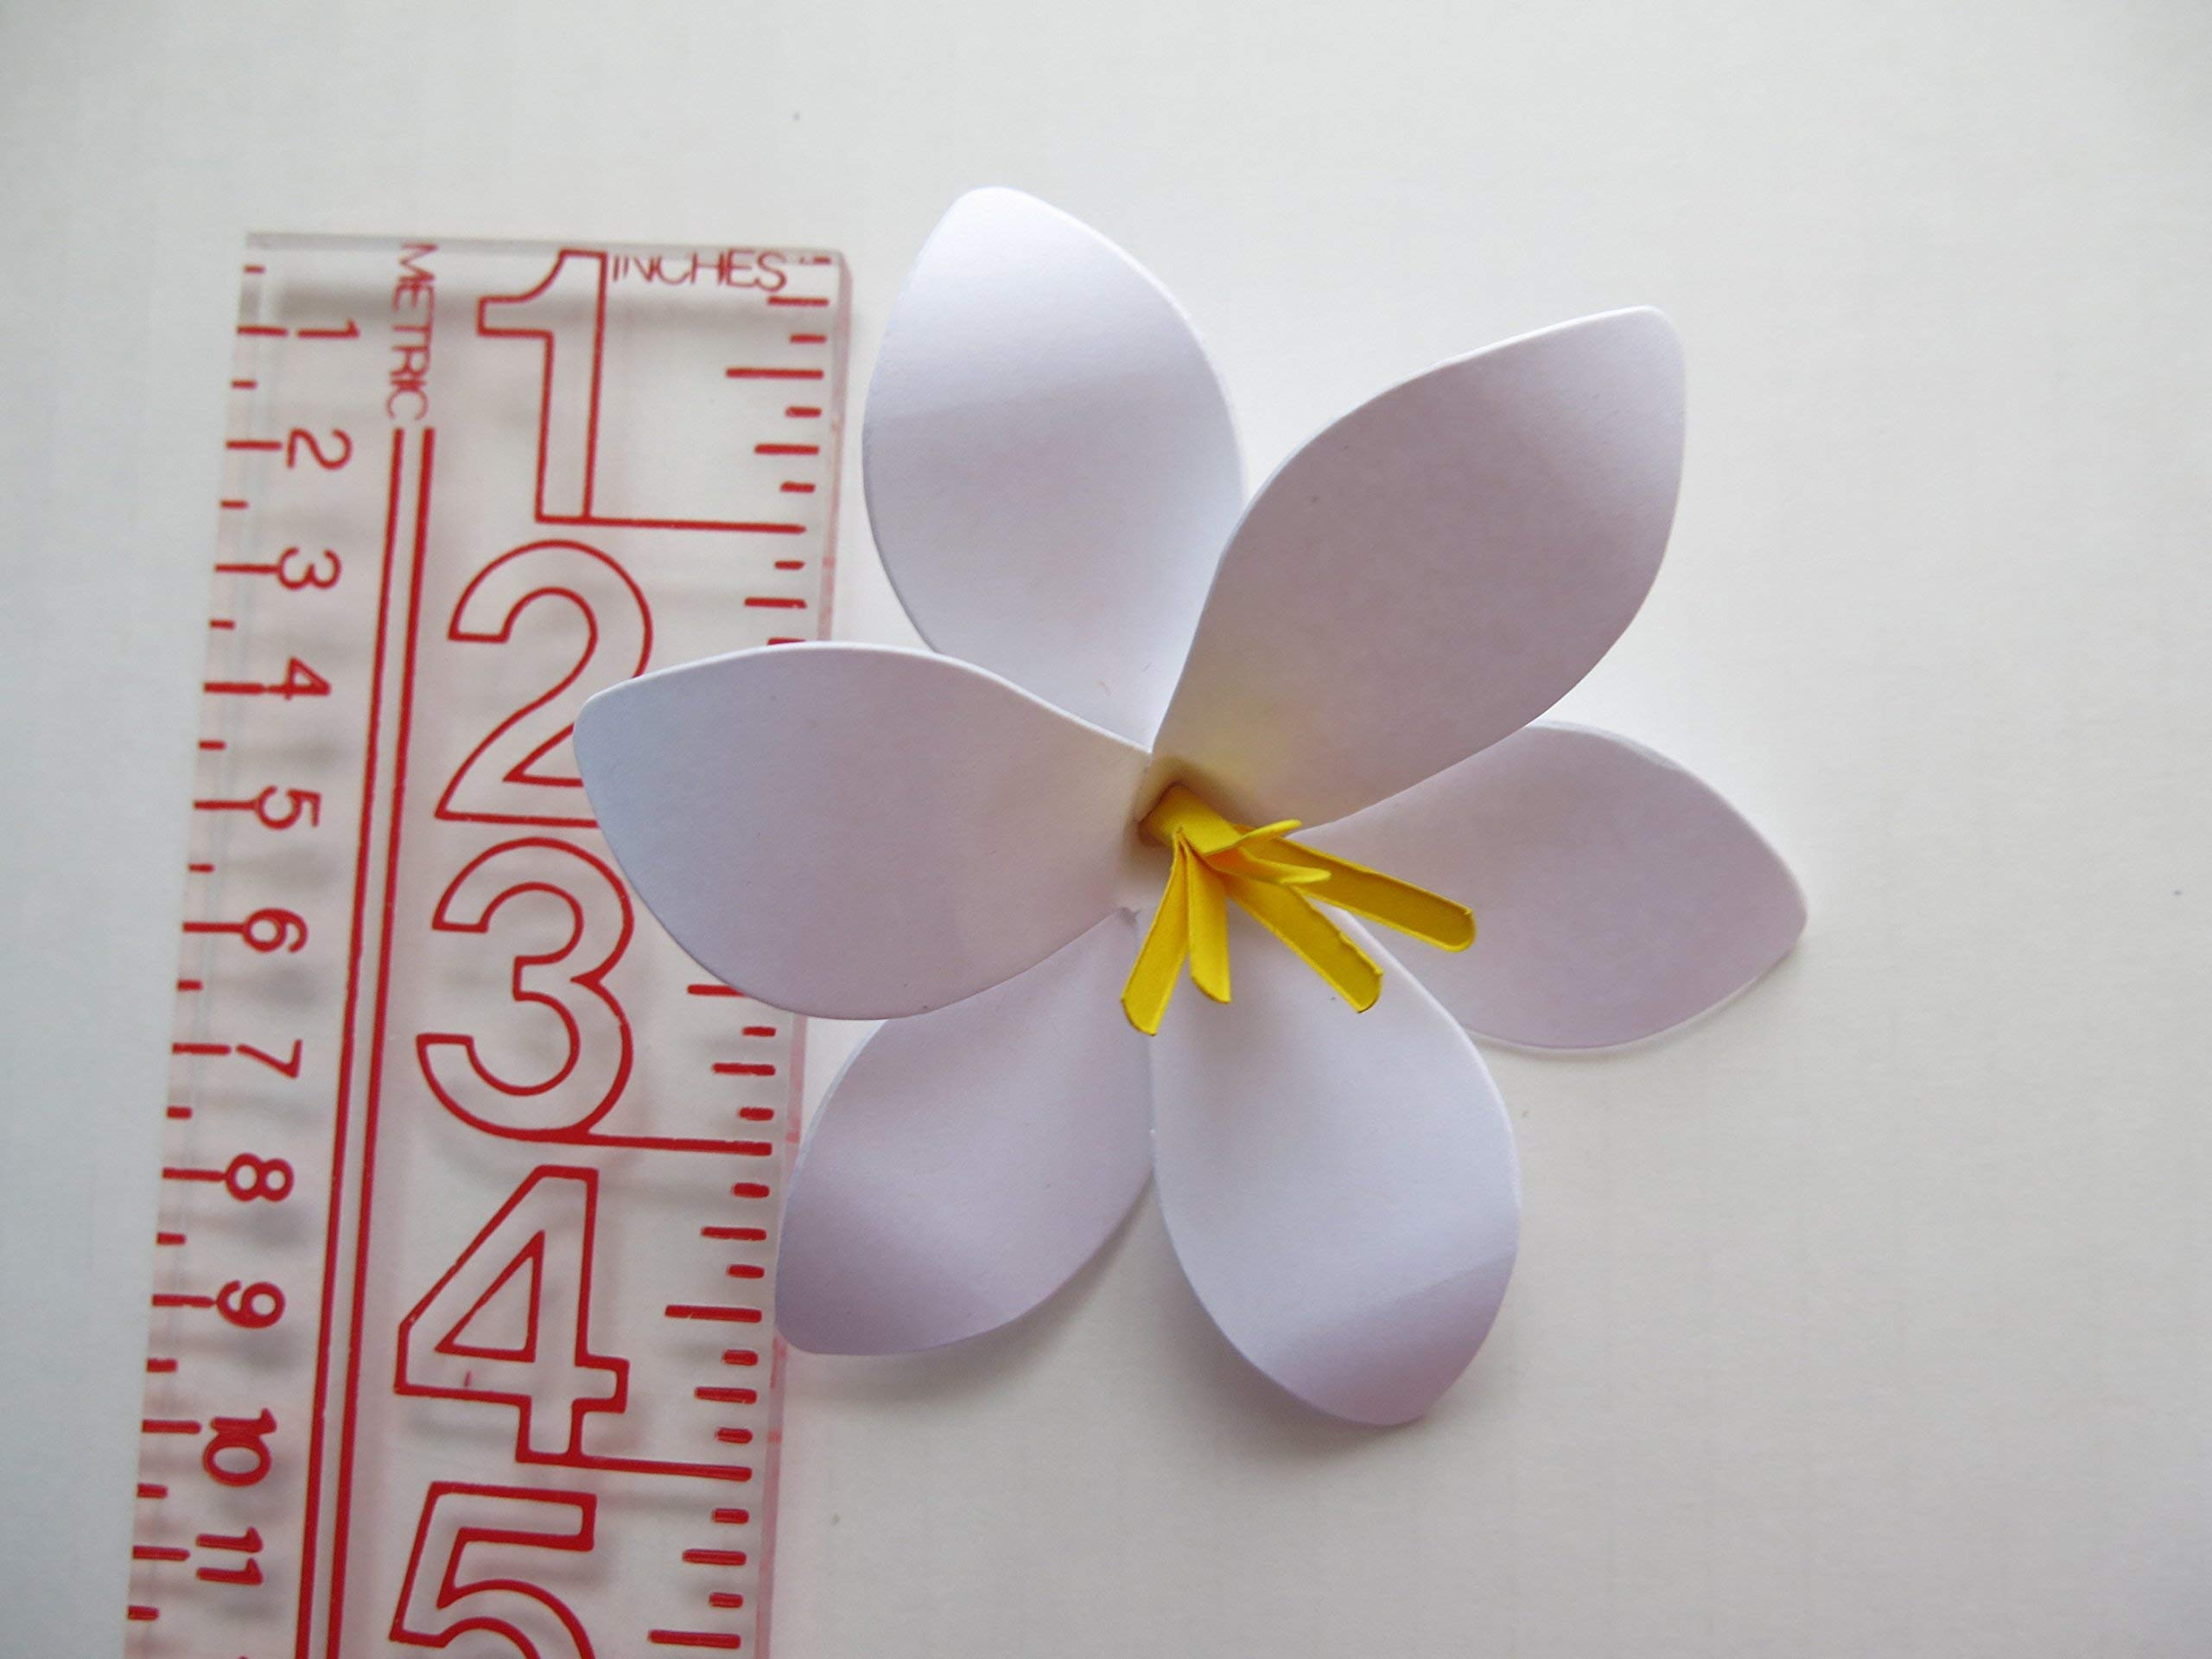 6 Stemmed Paper Flower Easter Lilies, Spring Floral Bouquet, White Lily, Sculpted Petals, 4 Inches Across